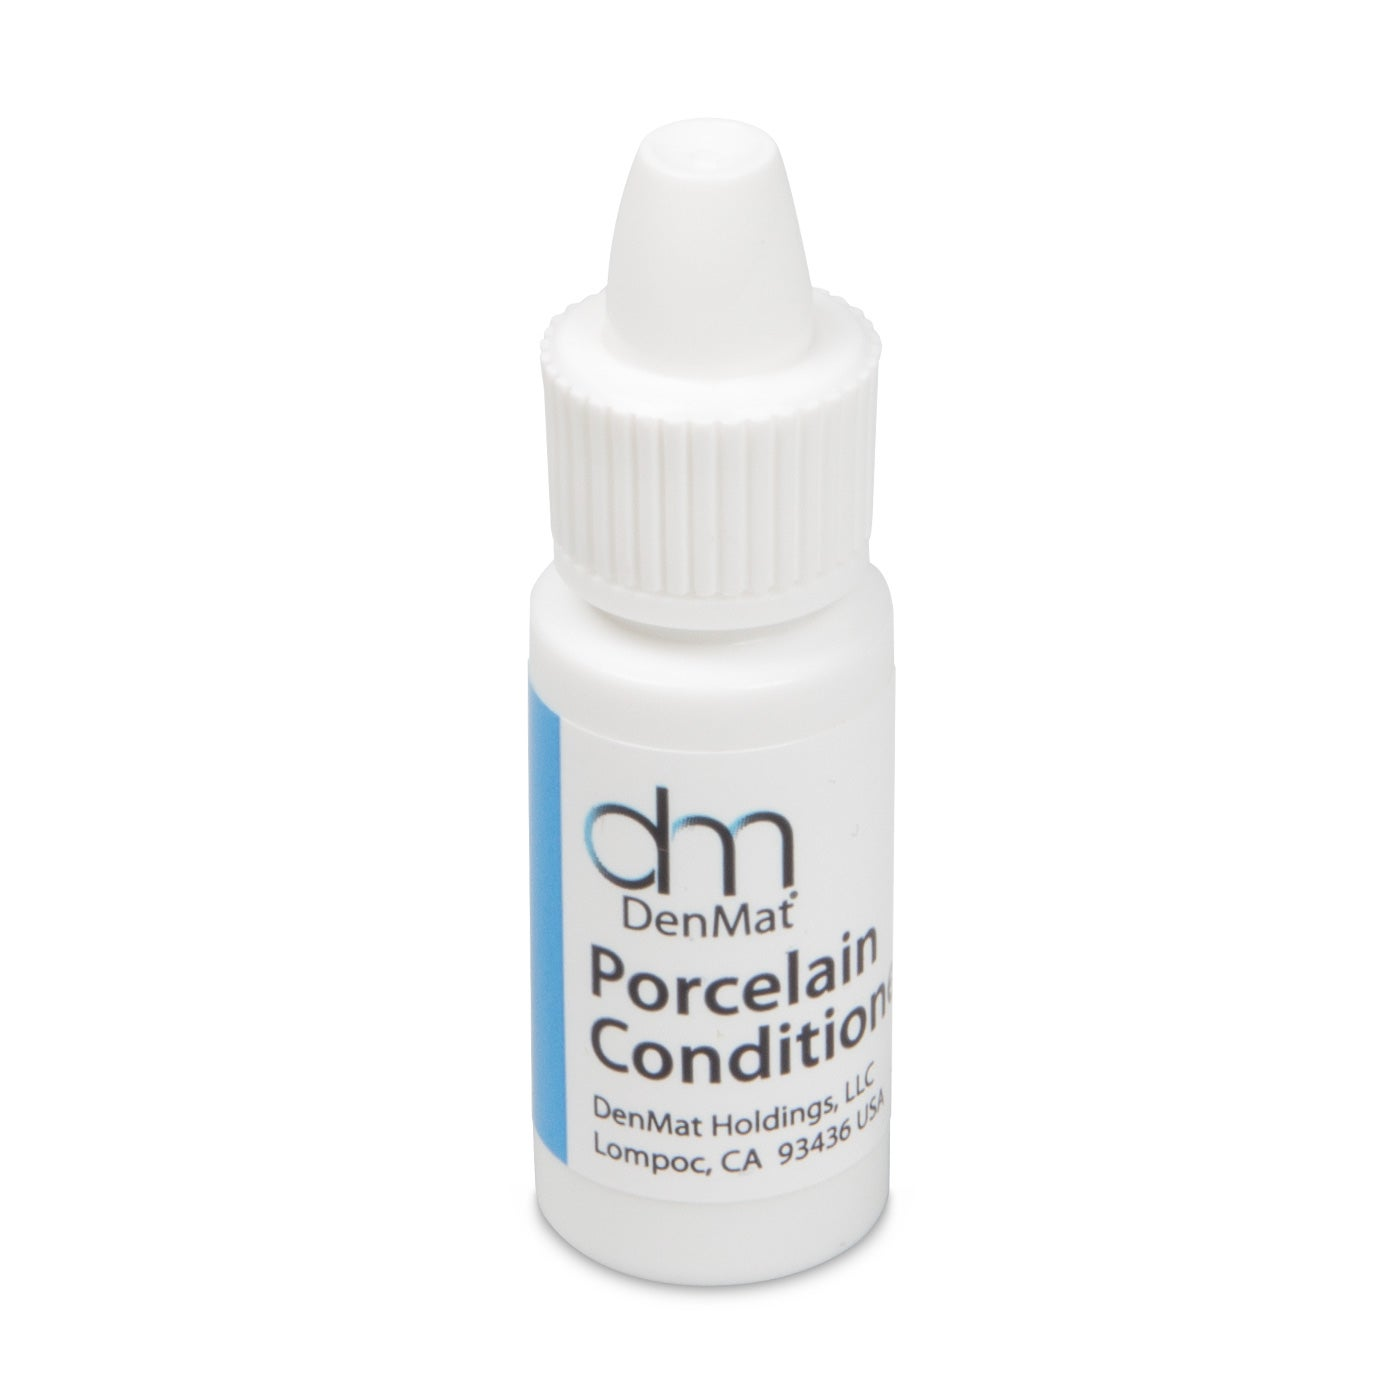 Dental Porcelain Conditioner - Porcelain Conditioner